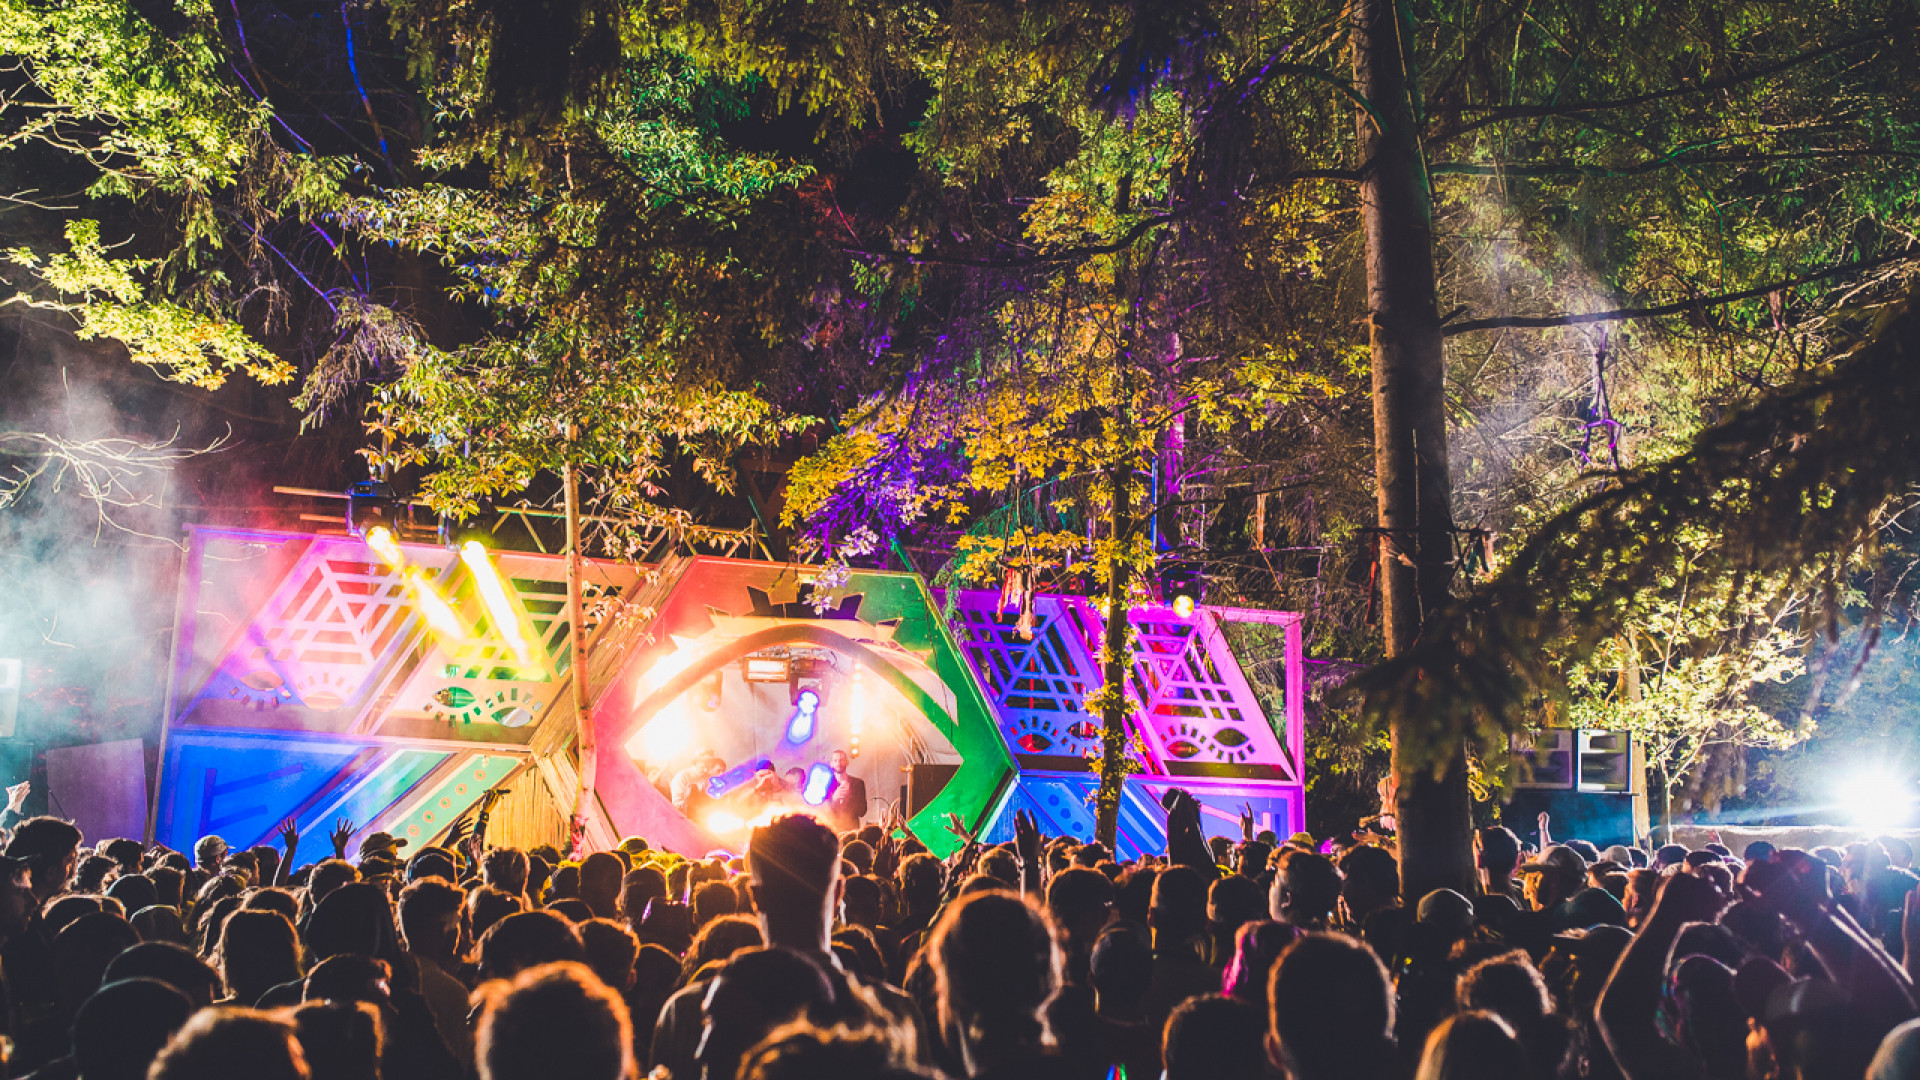 A stage at Farr Festival